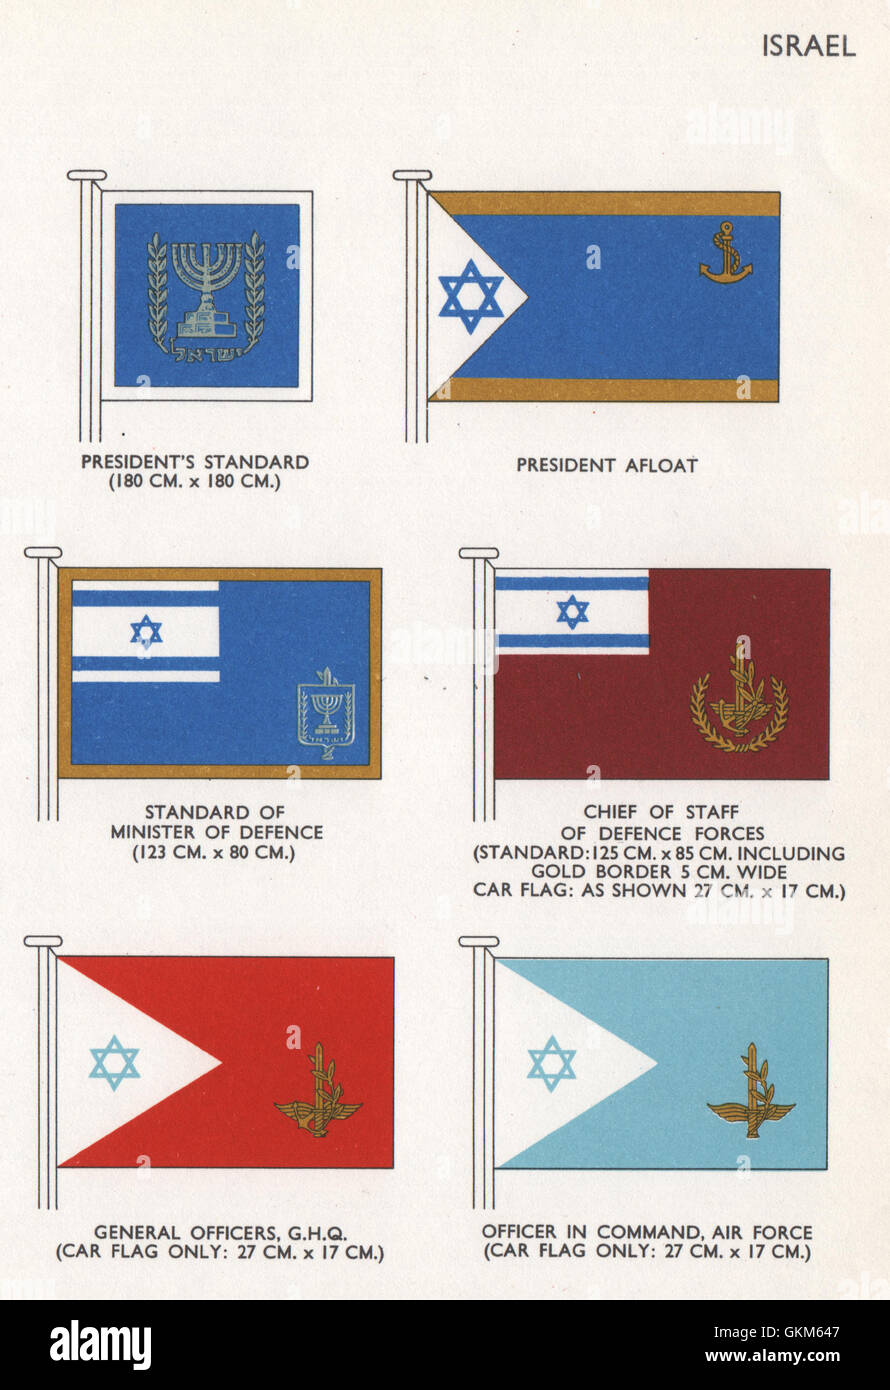 ISRAEL FLAGS President's Standard/Afloat Minister of Defence Chief of Staff 1958Stock Photo